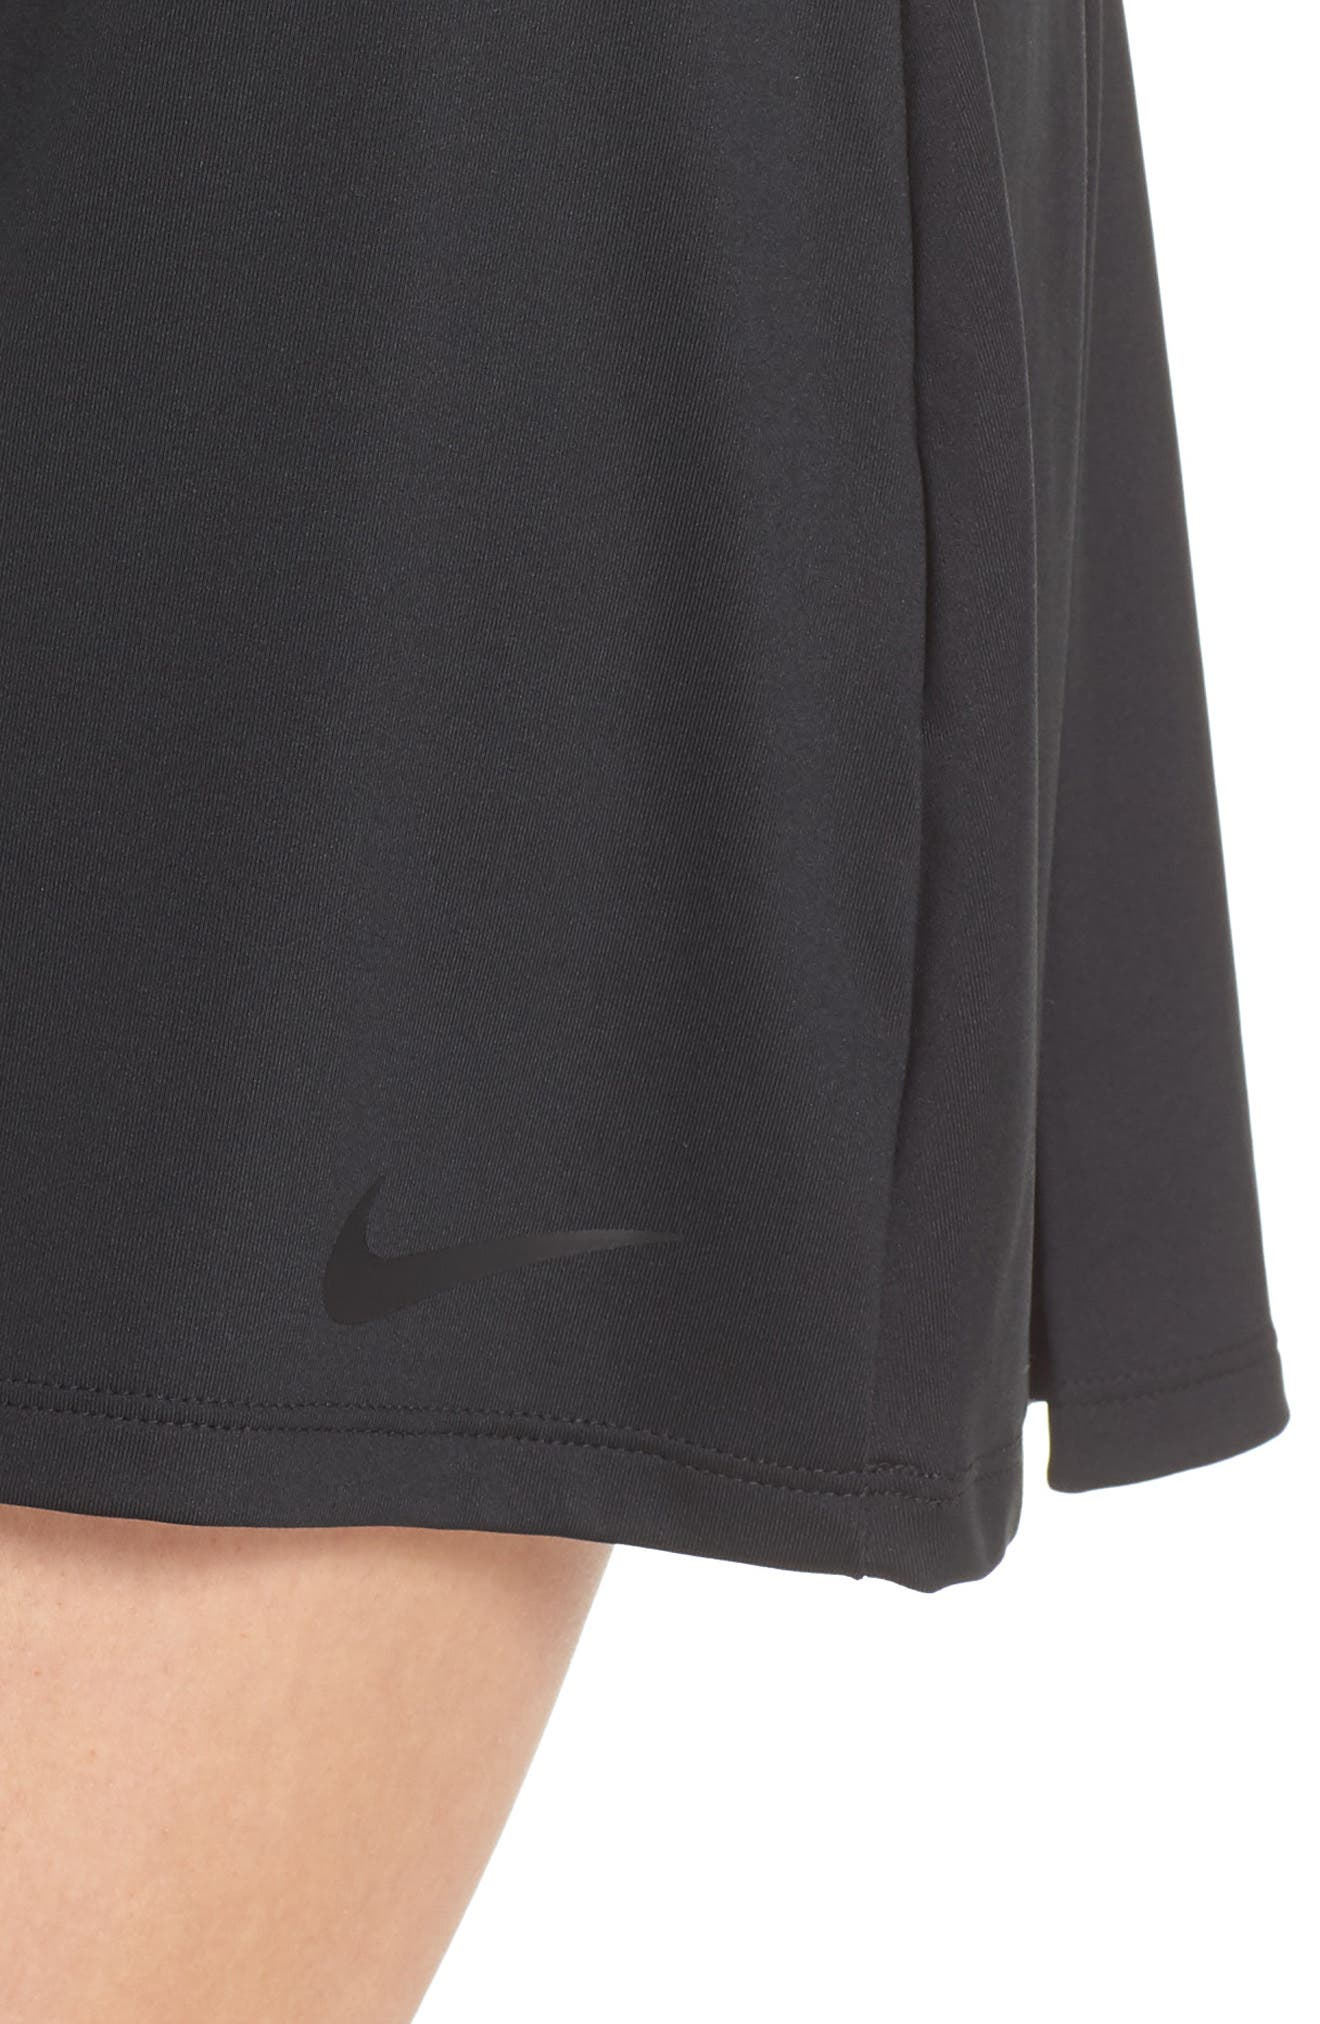 Flex Golf Skort,                             Alternate thumbnail 4, color,                             010